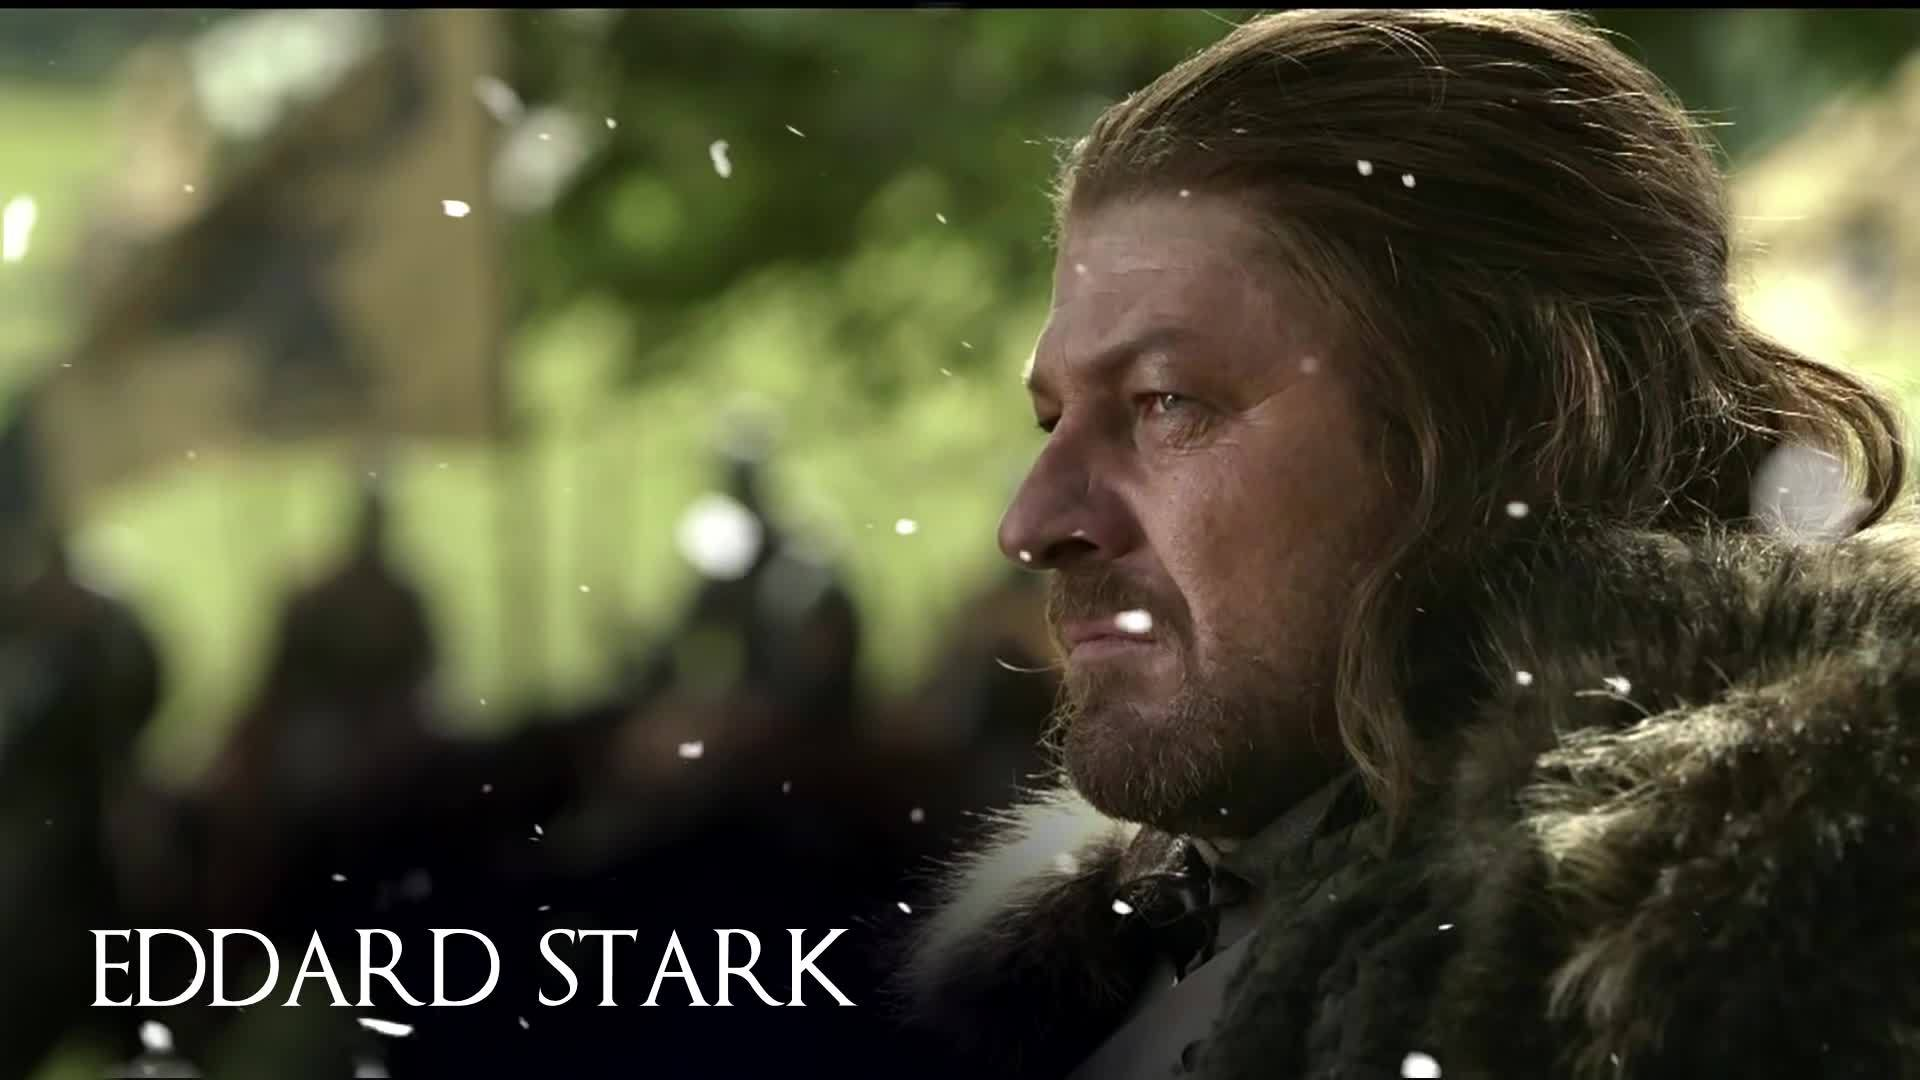 game of thrones characters, gameofthrones, white walkers, Ned Stark as a White Walker GIFs